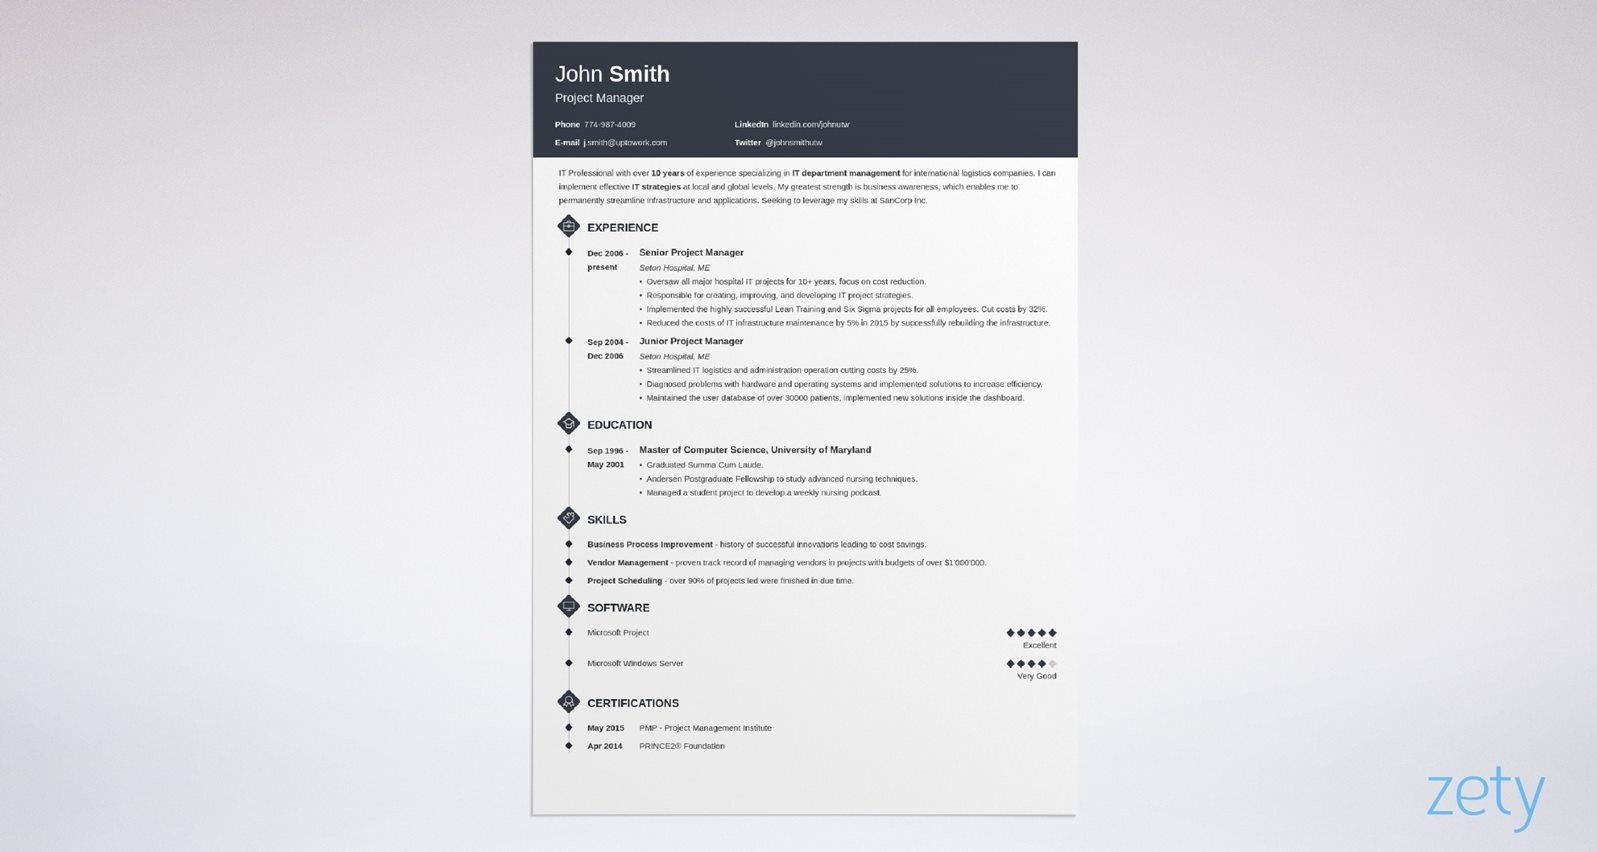 blank resume templates forms to fill in and autofill template diamond software engineer Resume Resume Templates Autofill